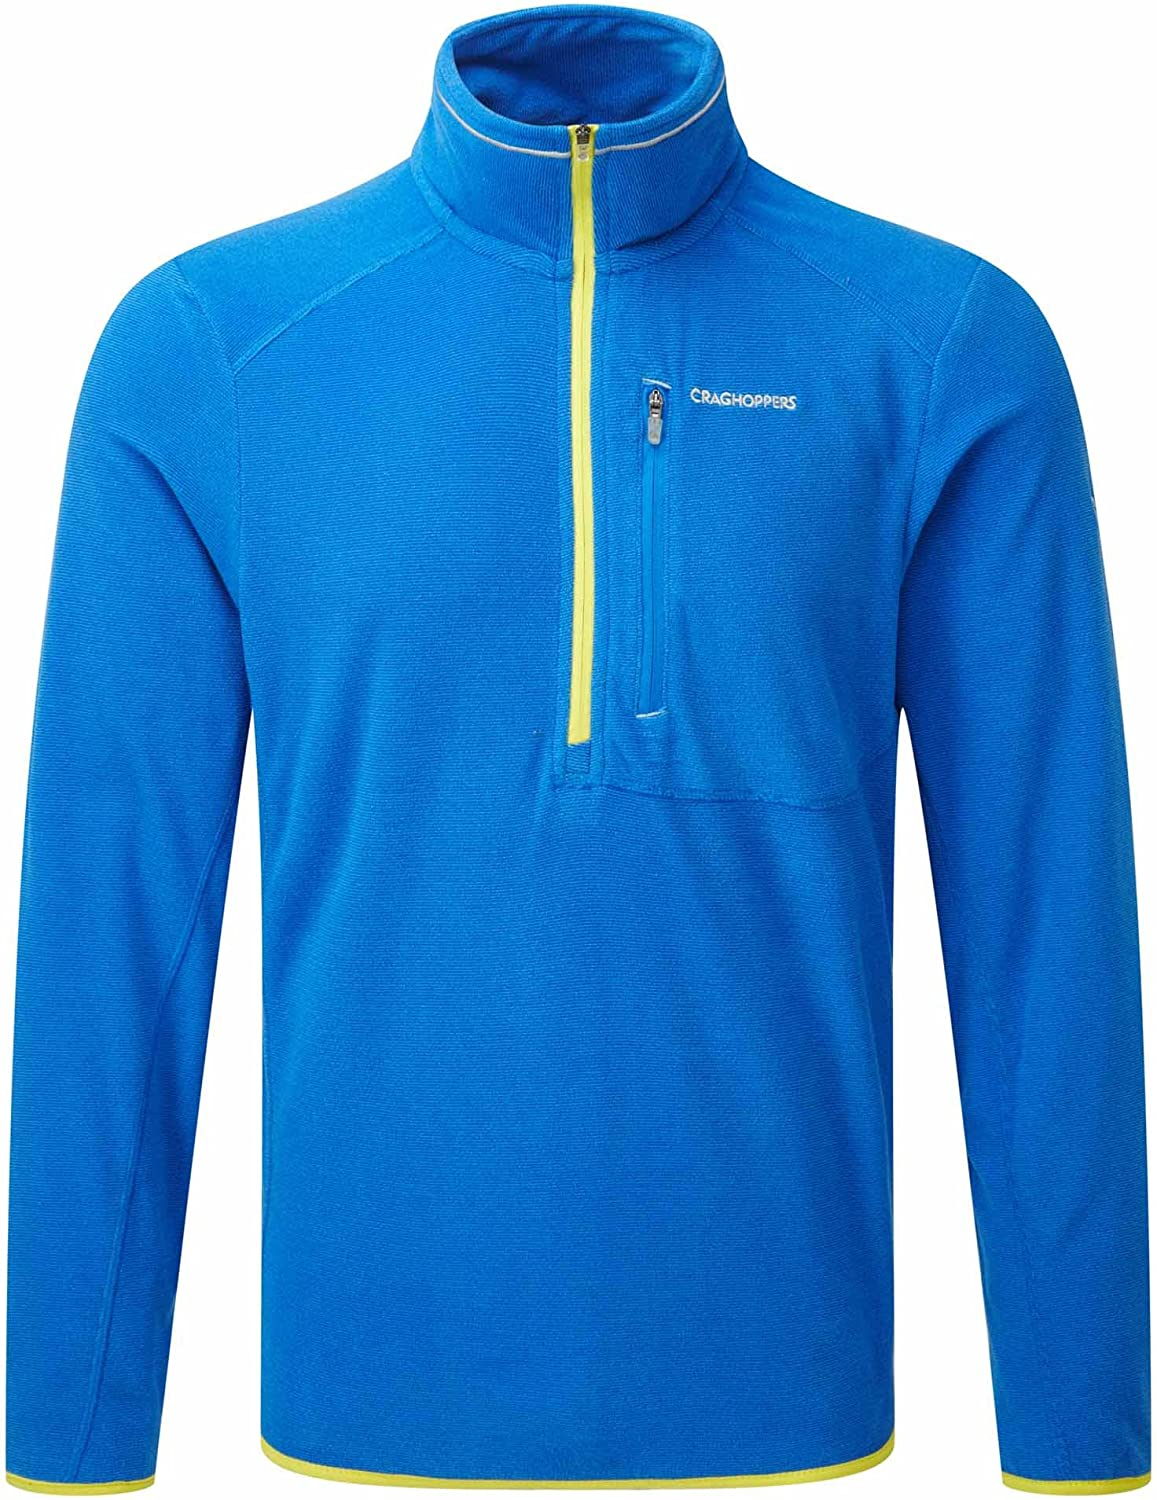 Craghoppers Mens Pro Lite Half Zip Jacket